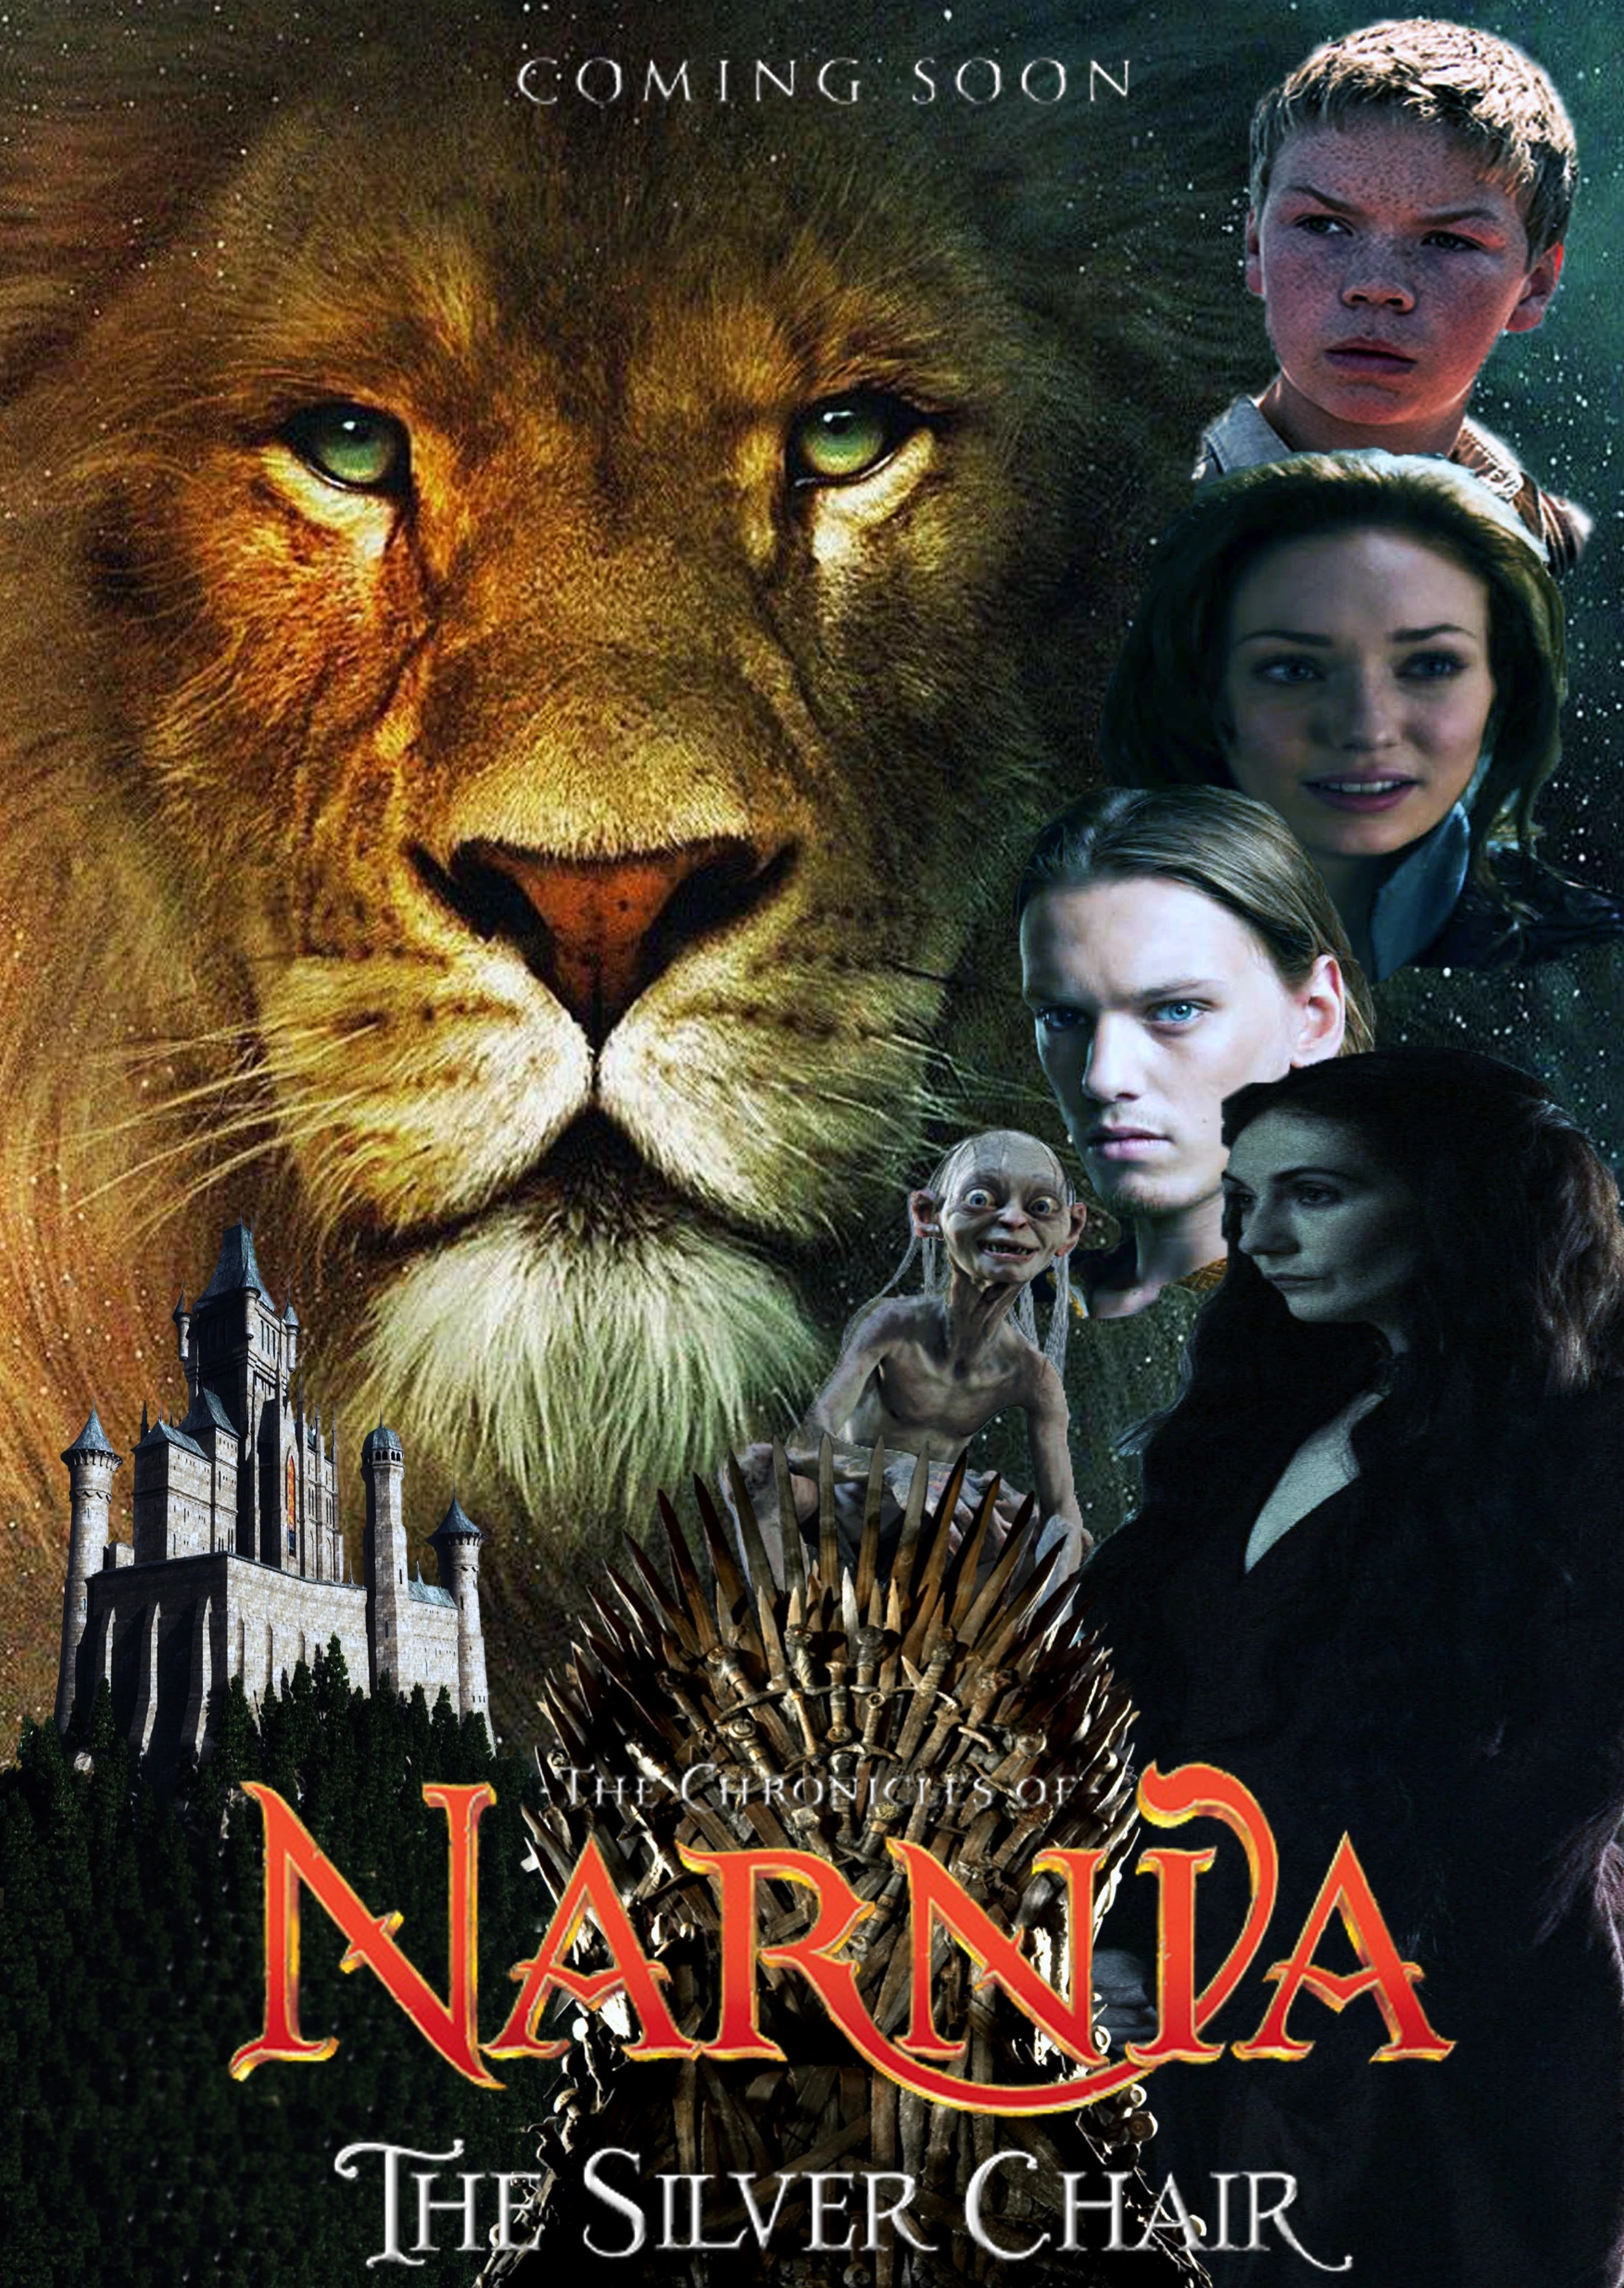 Narnia The Silver Chair The Chronicles Of Narnia The Silver Chair 2013 Film